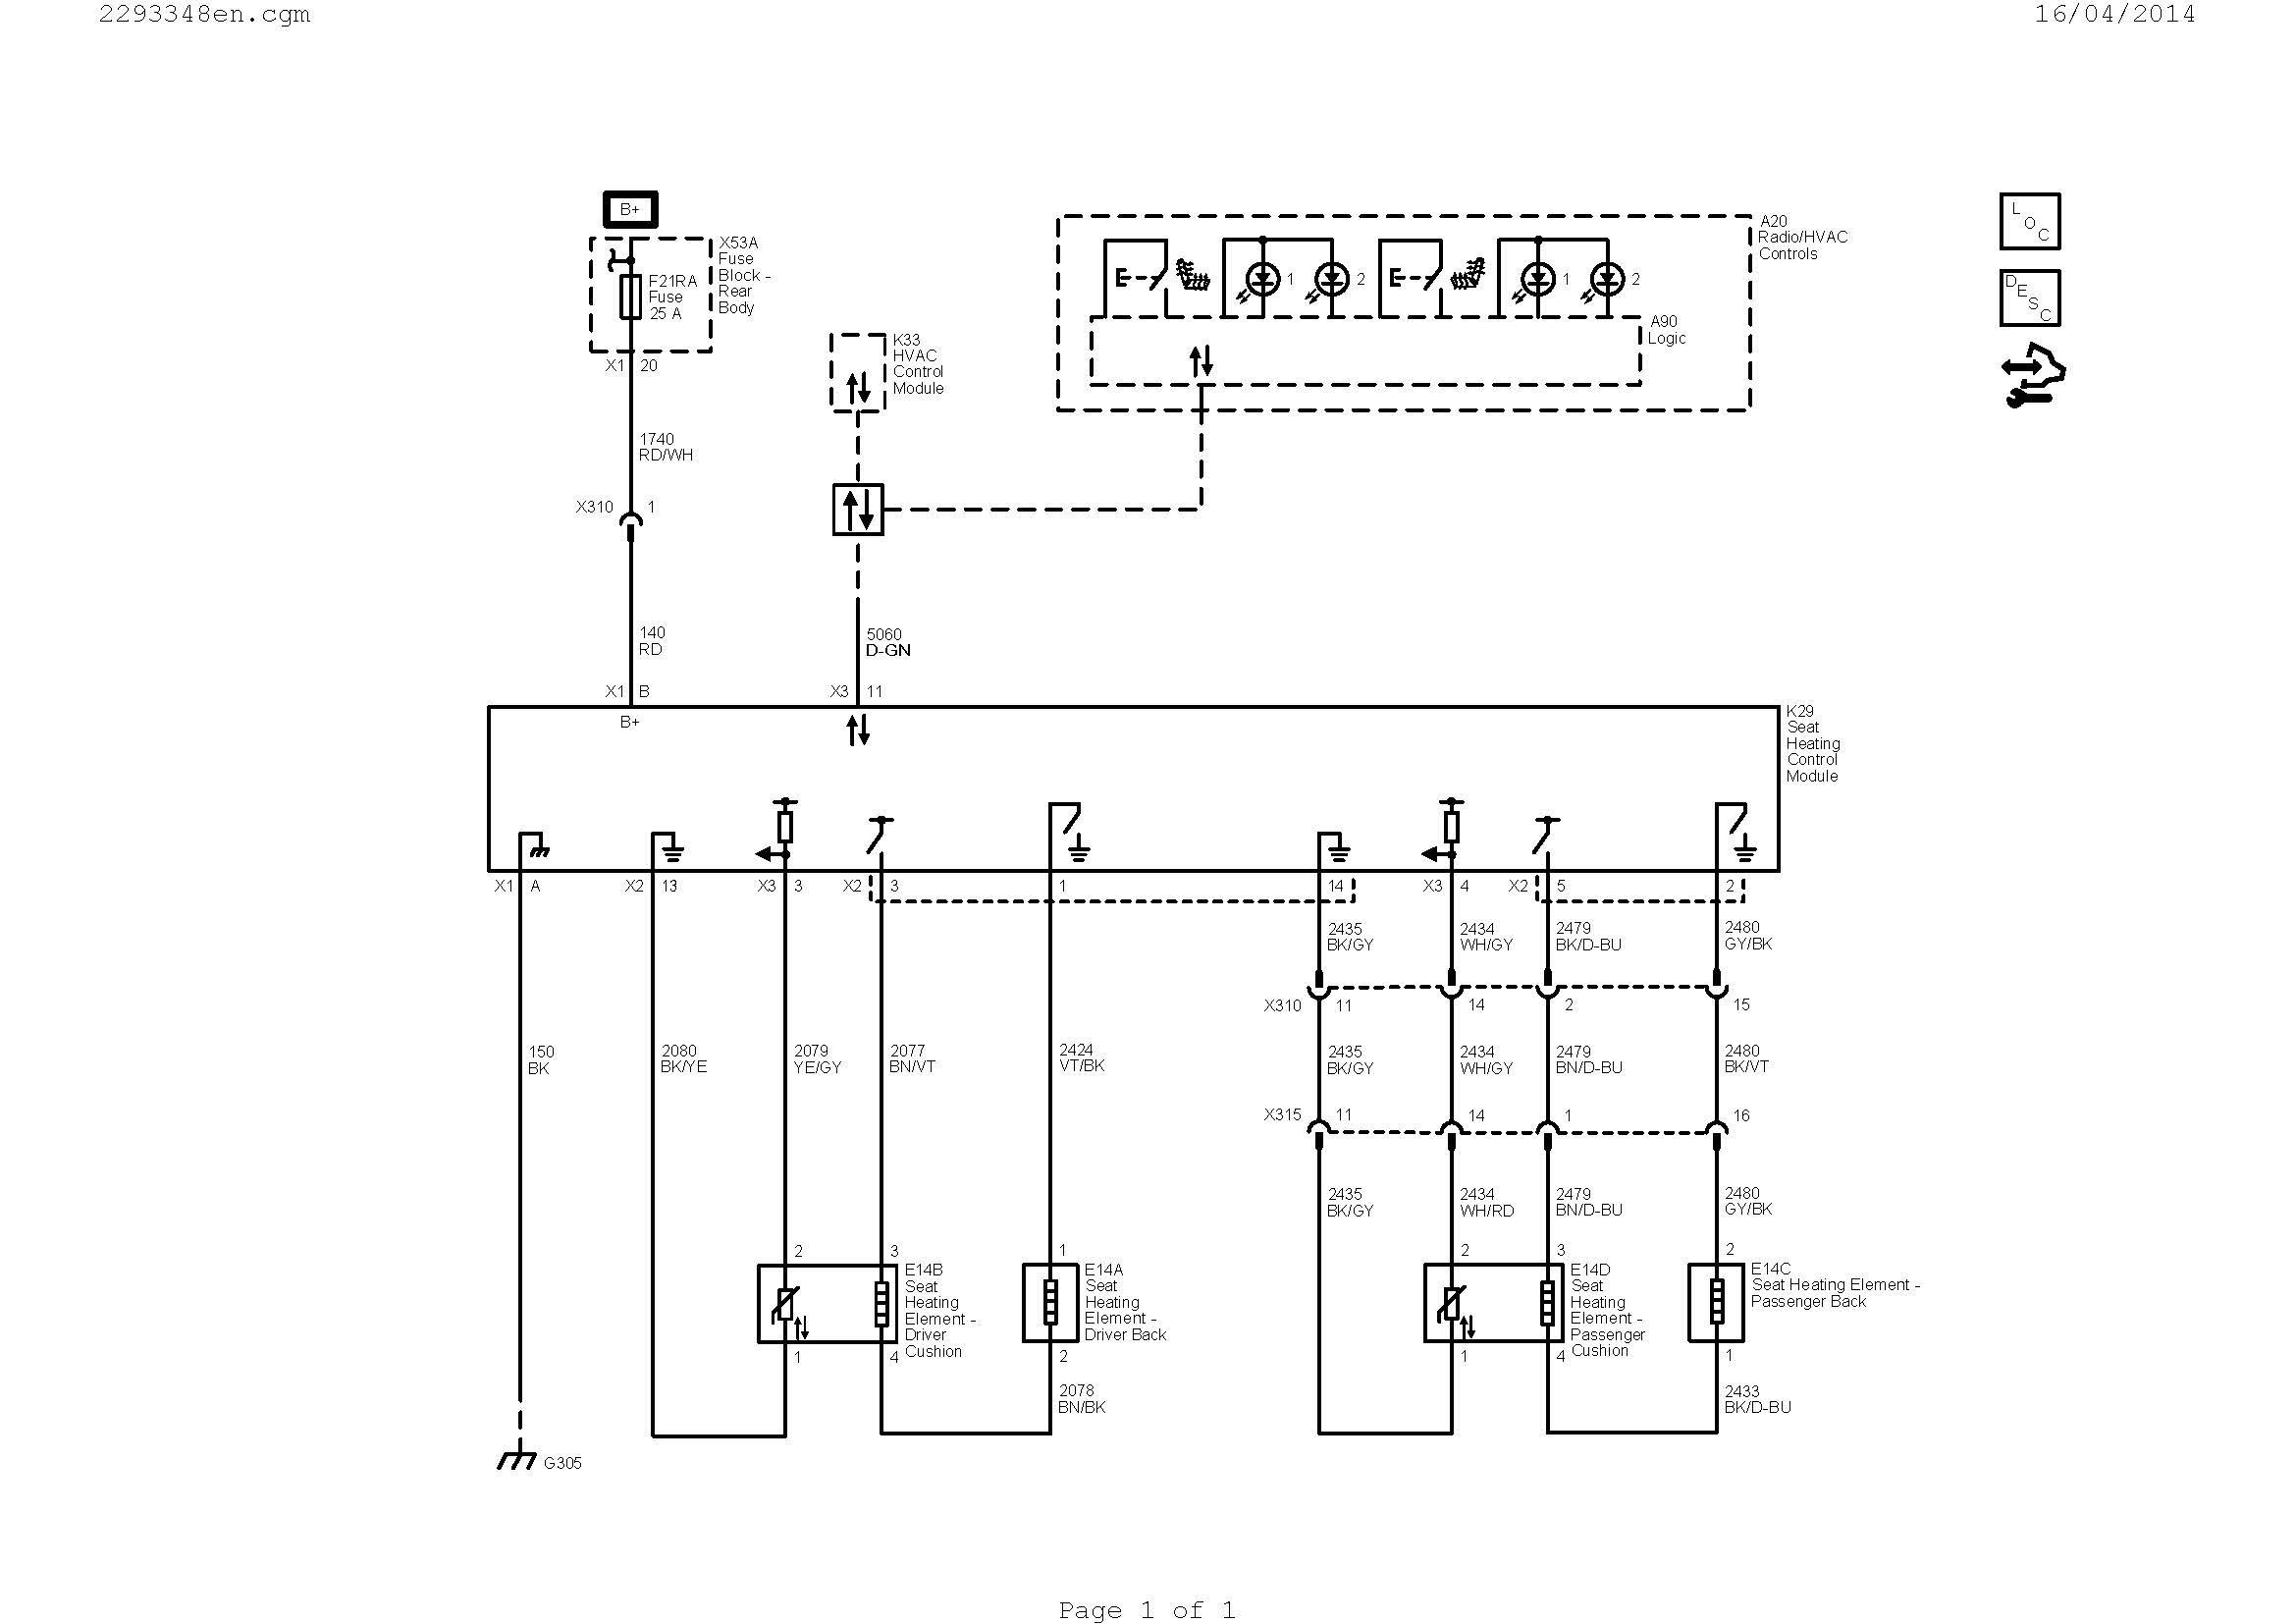 clarion car stereo wiring diagram Download-Wiring Diagram Amplifier Save Wiring Diagram Ac Valid Hvac Diagram Best Hvac Diagram 0d – 9-d